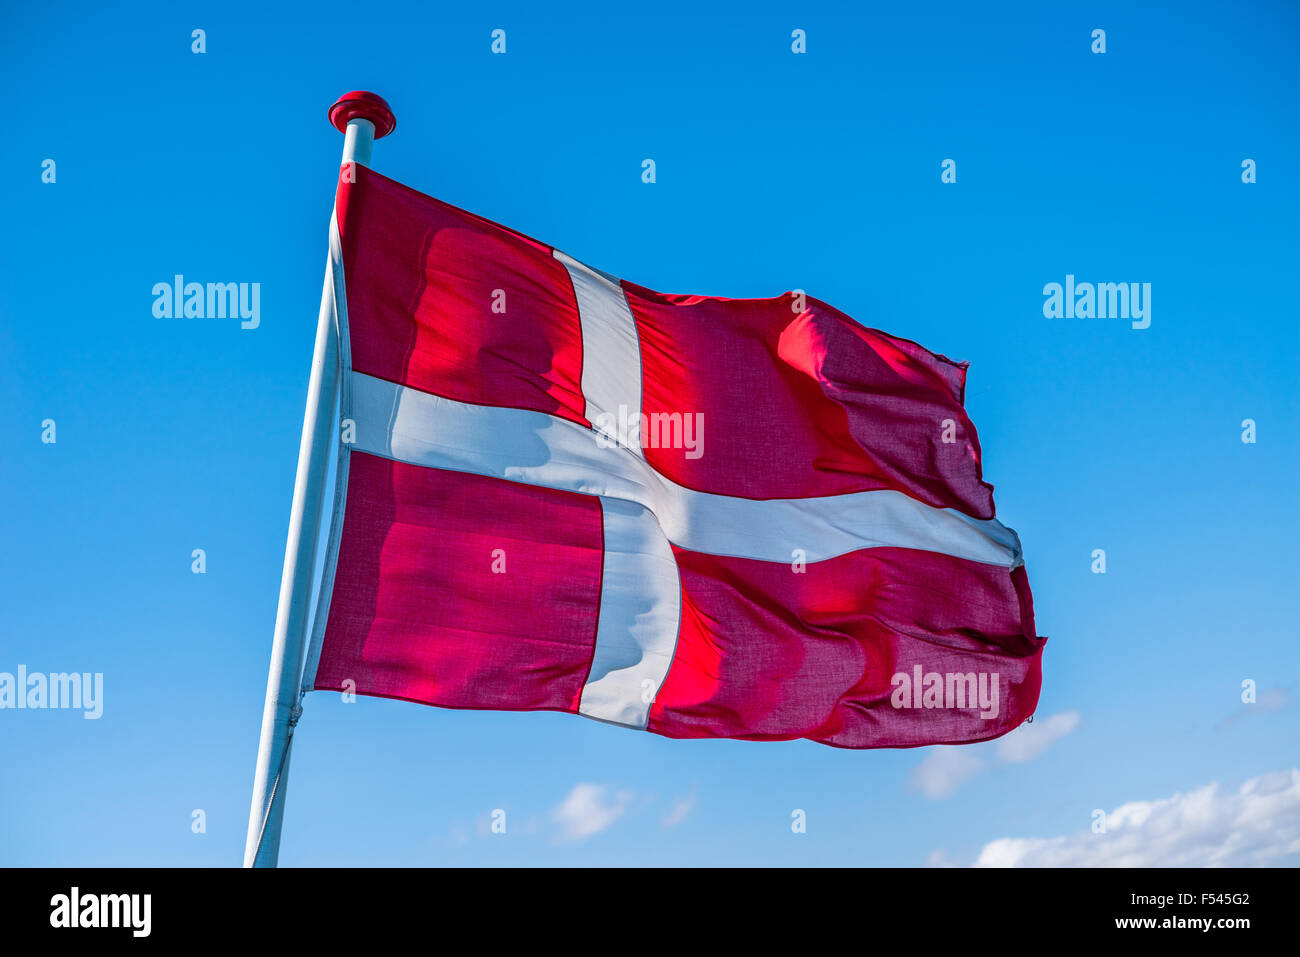 Danish flag in the wind on blue background - Stock Image